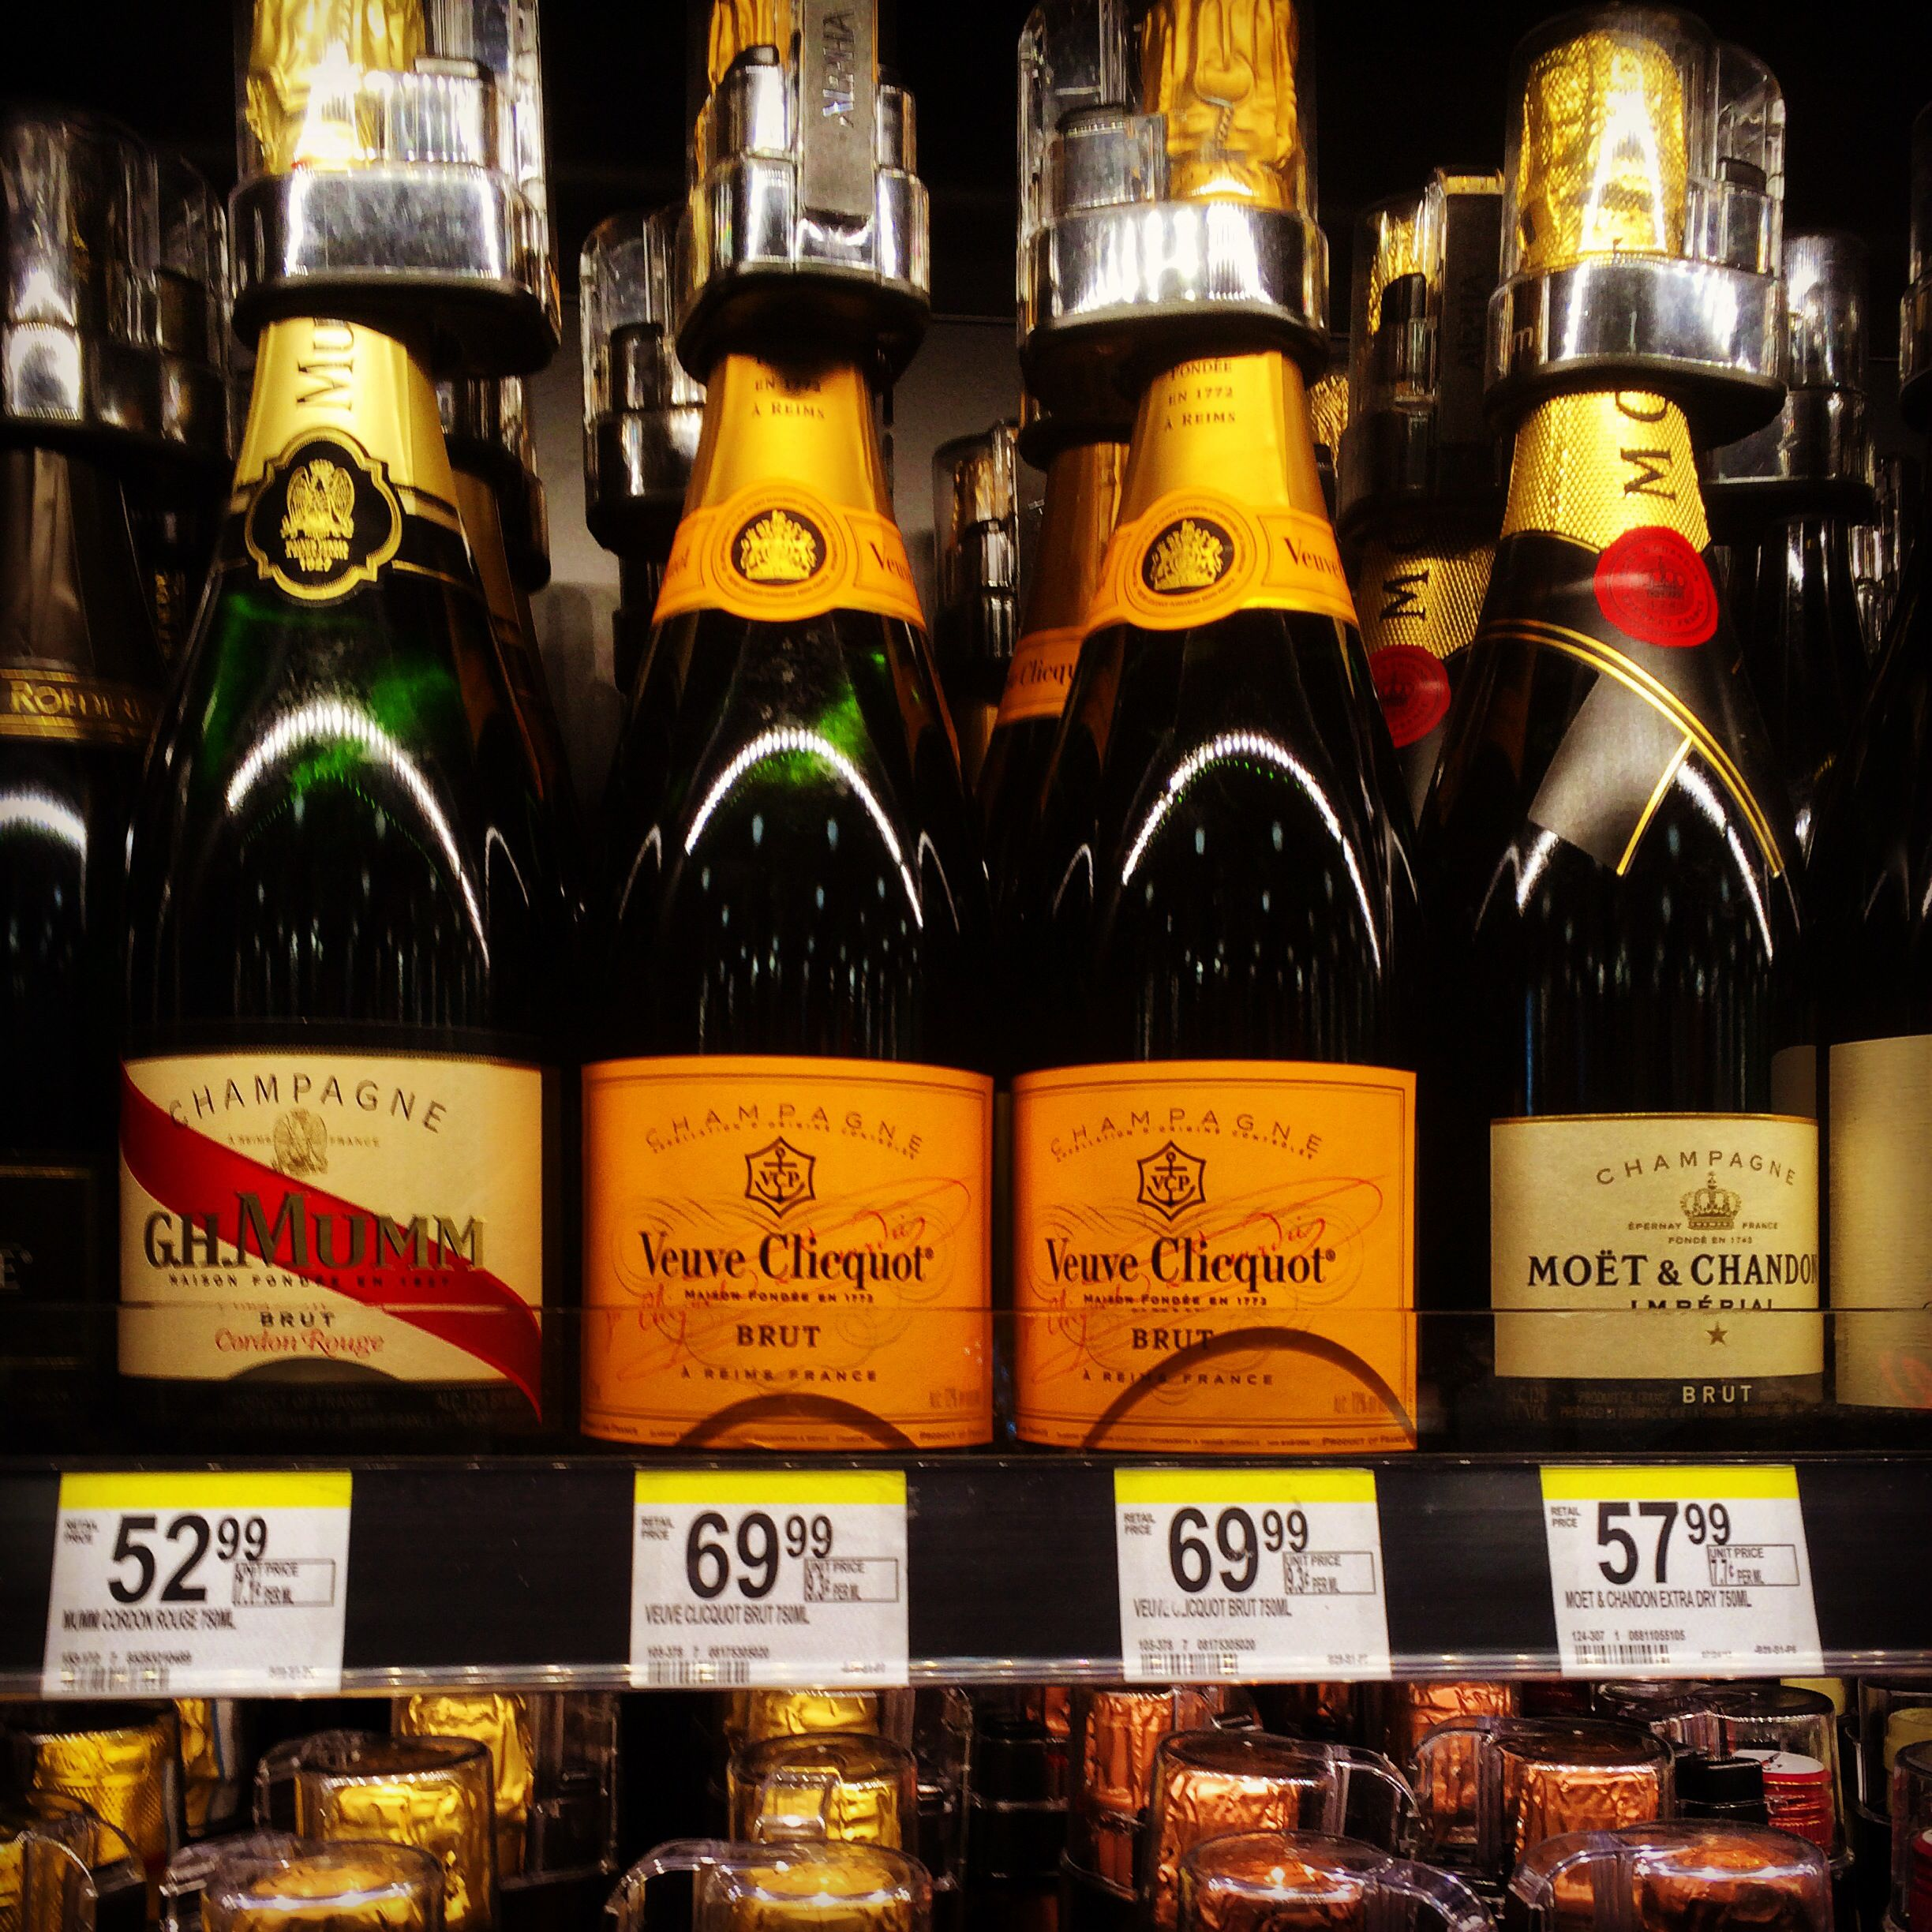 champagne your charmin sf walgreens now selling veuve sf walgreens now selling veuve clicquot